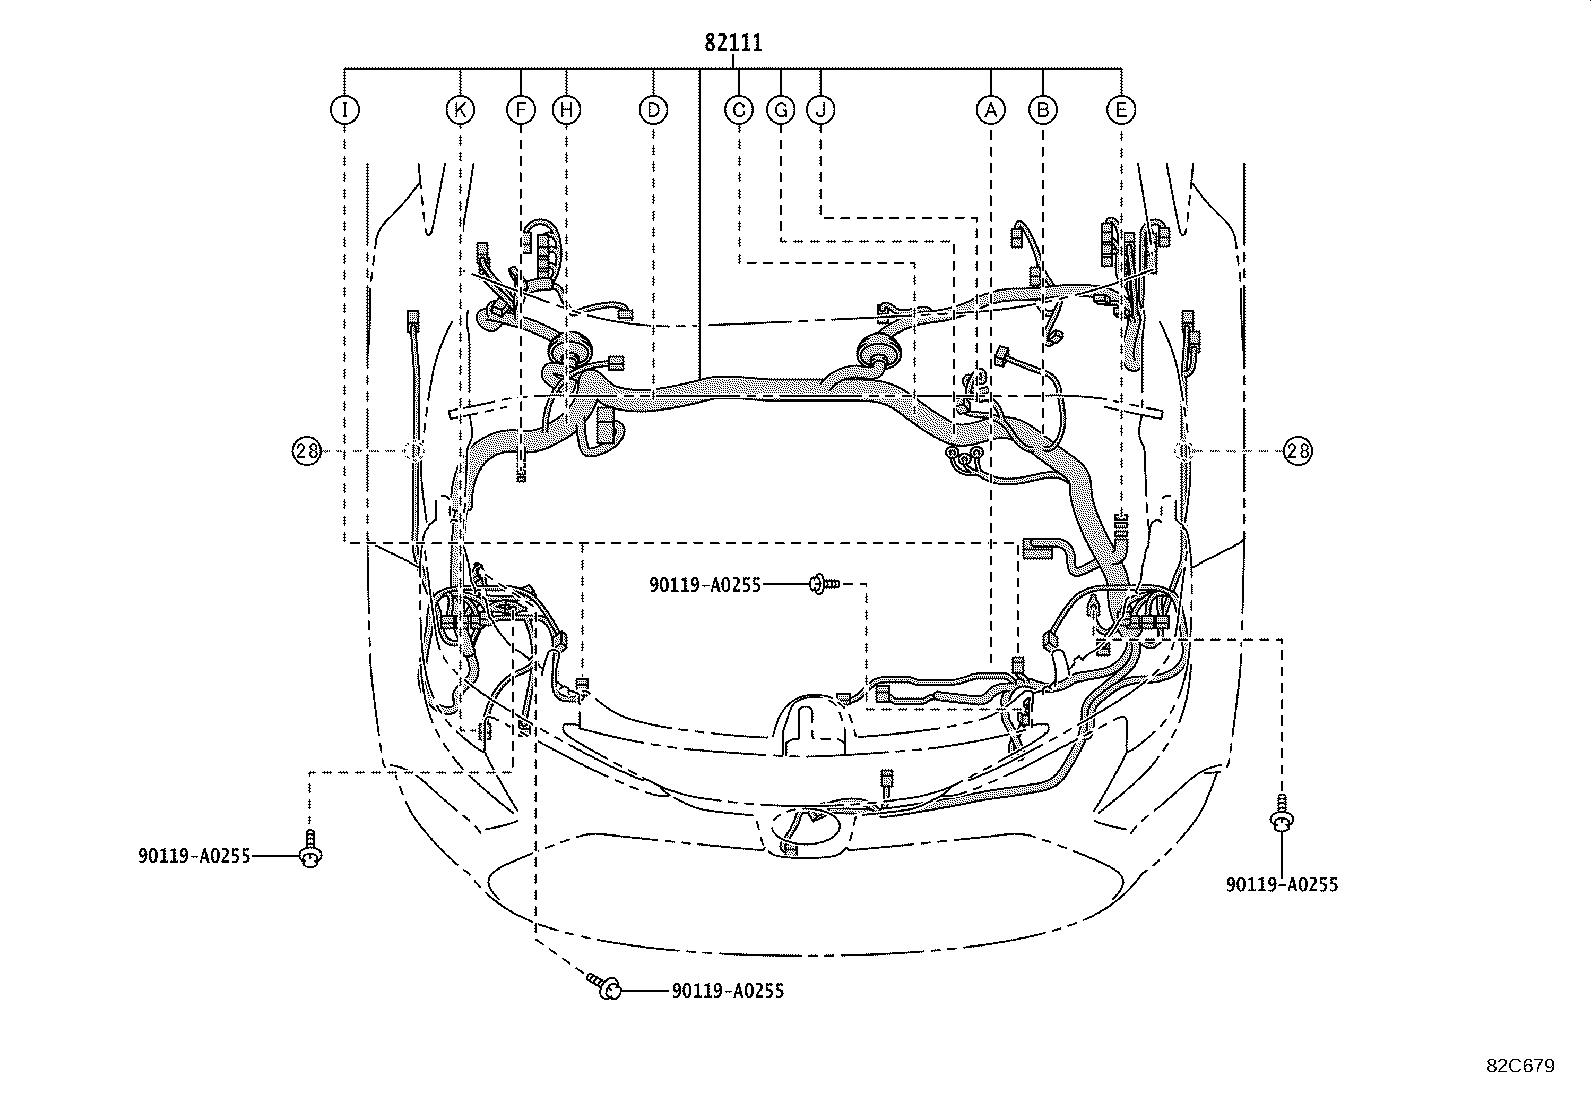 Toyota Corolla Protector Wiring Harness No 12 Wiring